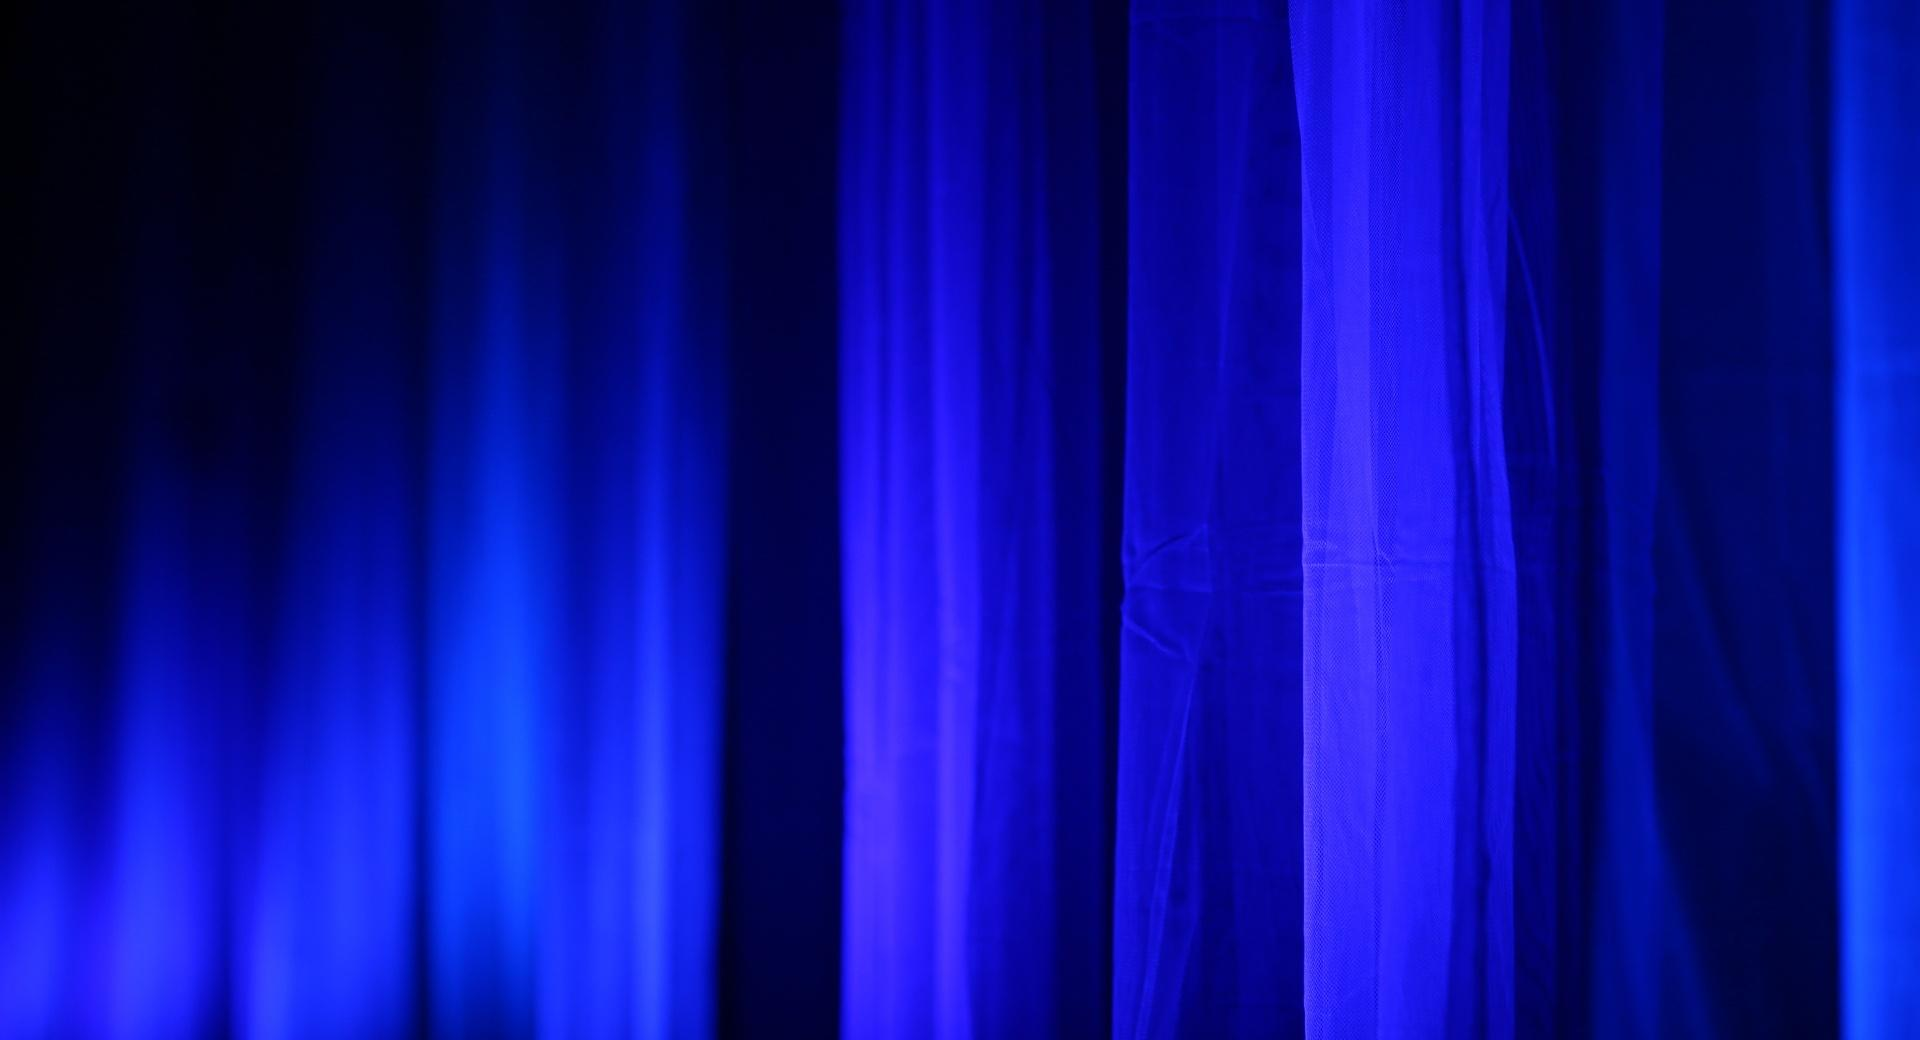 Blue Curtains wallpapers HD quality